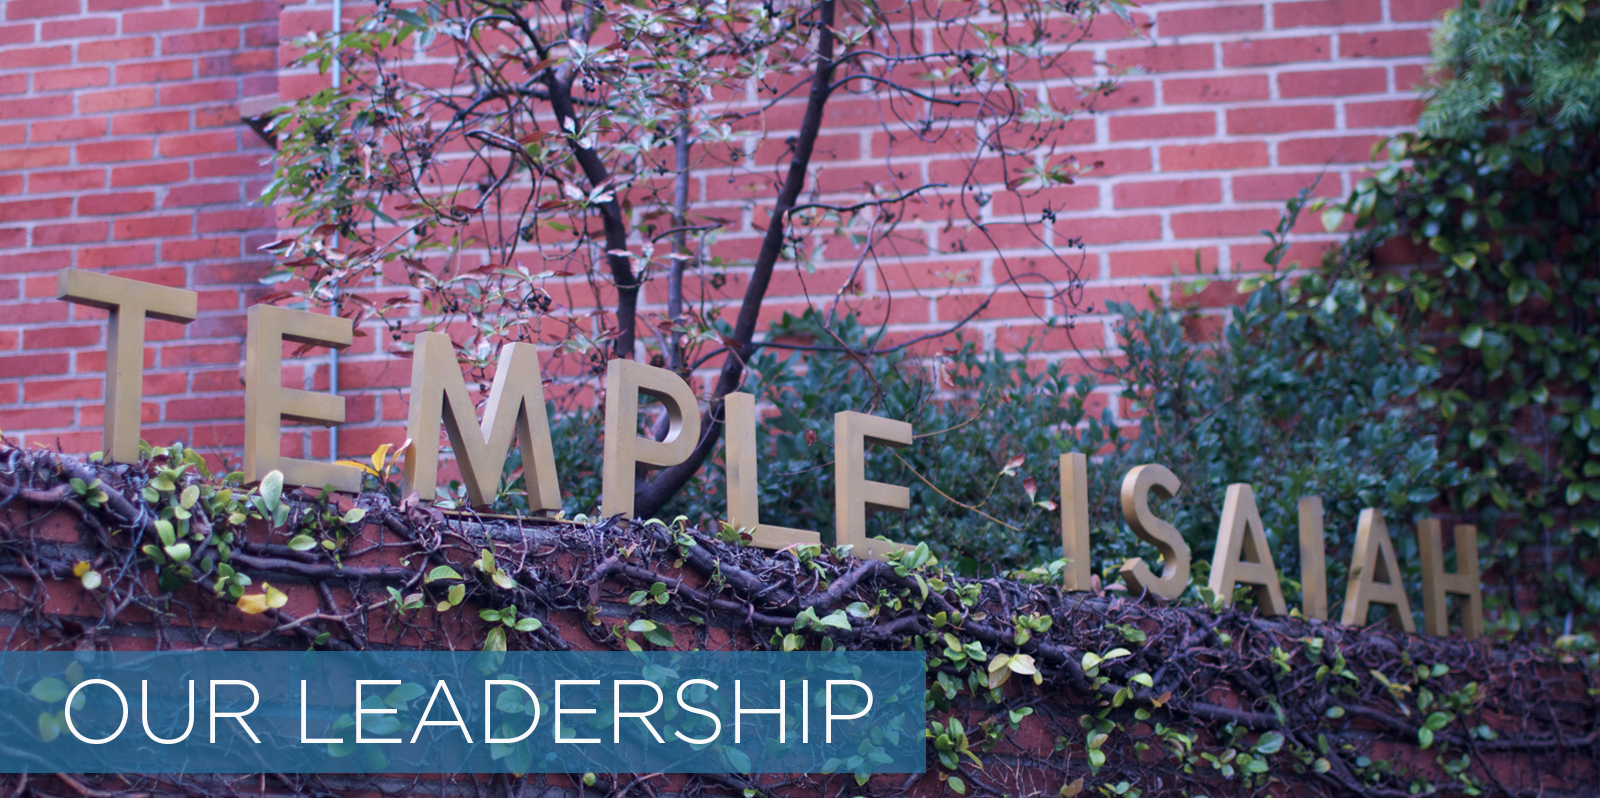 /home/templeis/public_html/images/header_image/1552500627header_image1452711134header_imageour leadership.jpg.